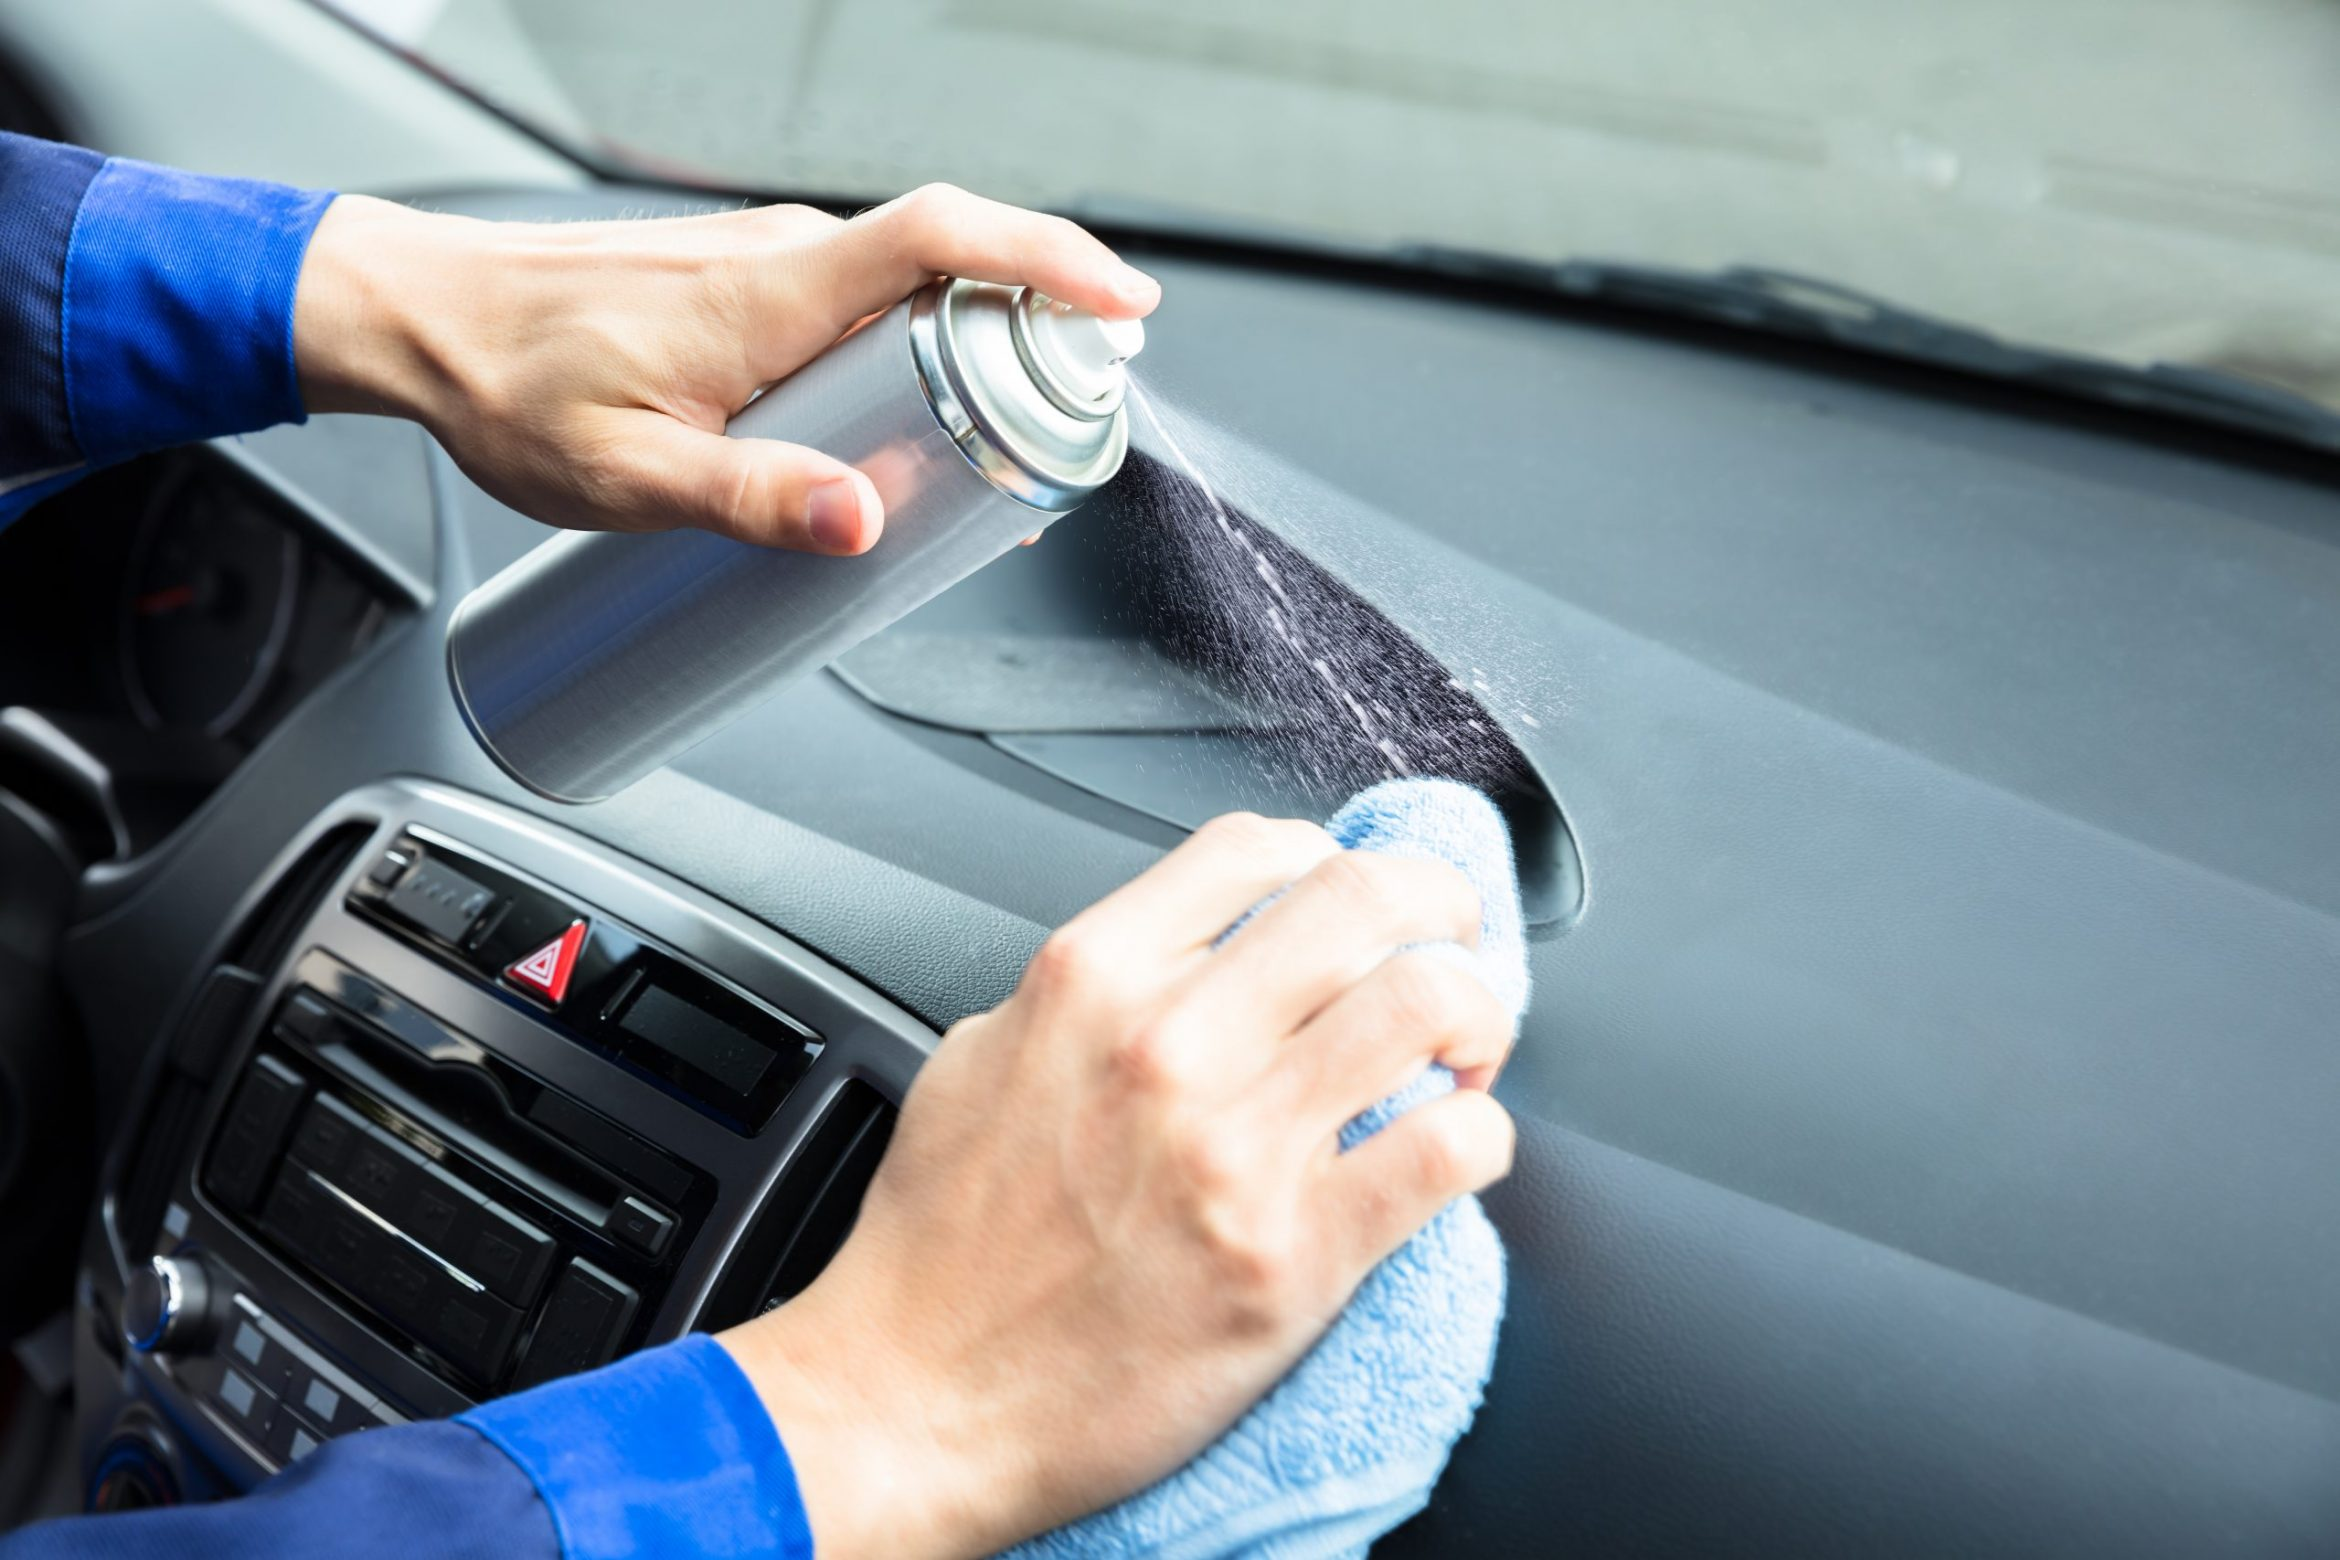 How to Properly Clean Out Your Car